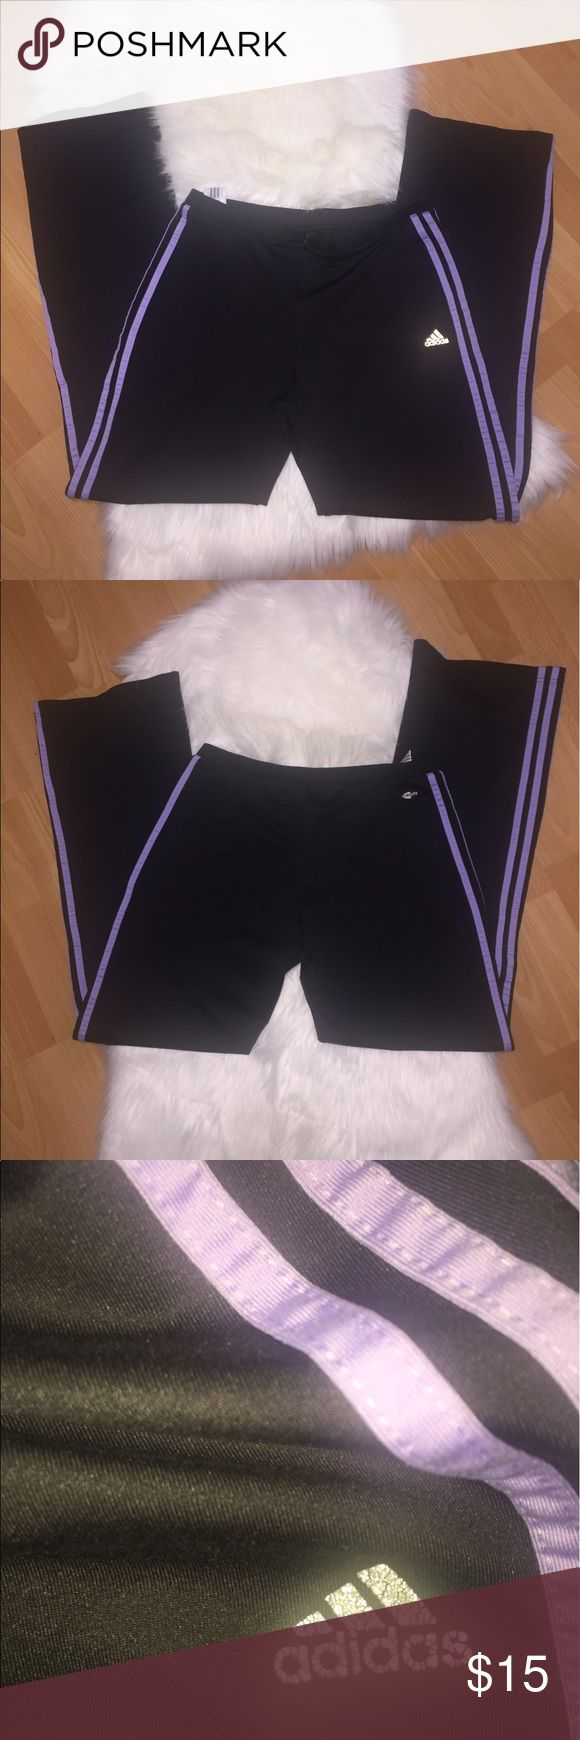 Adidas purple striped climate track pants Size large Women's. stretchy waist band and fabric that zips up. The traditional 3stripes run vertically on each leg with a purple stripe. The adidas logo and climate wording on the front and back are worn and peeling of but still legible. Adidas Pants Track Pants & Joggers